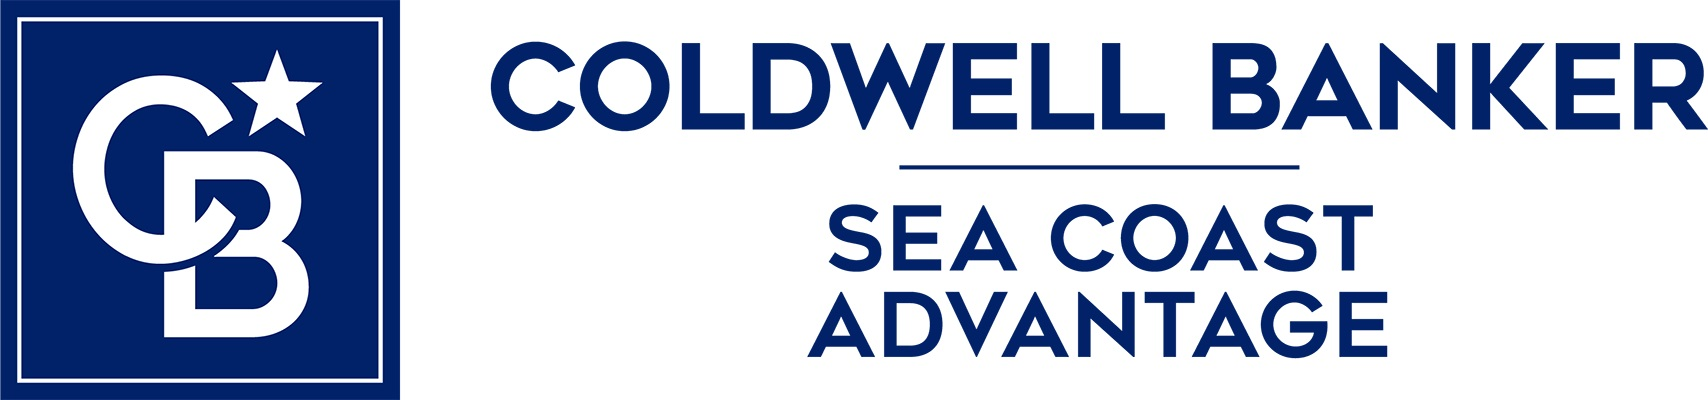 Shelly Day - Coldwell Banker Sea Coast Advantage Realty Logo